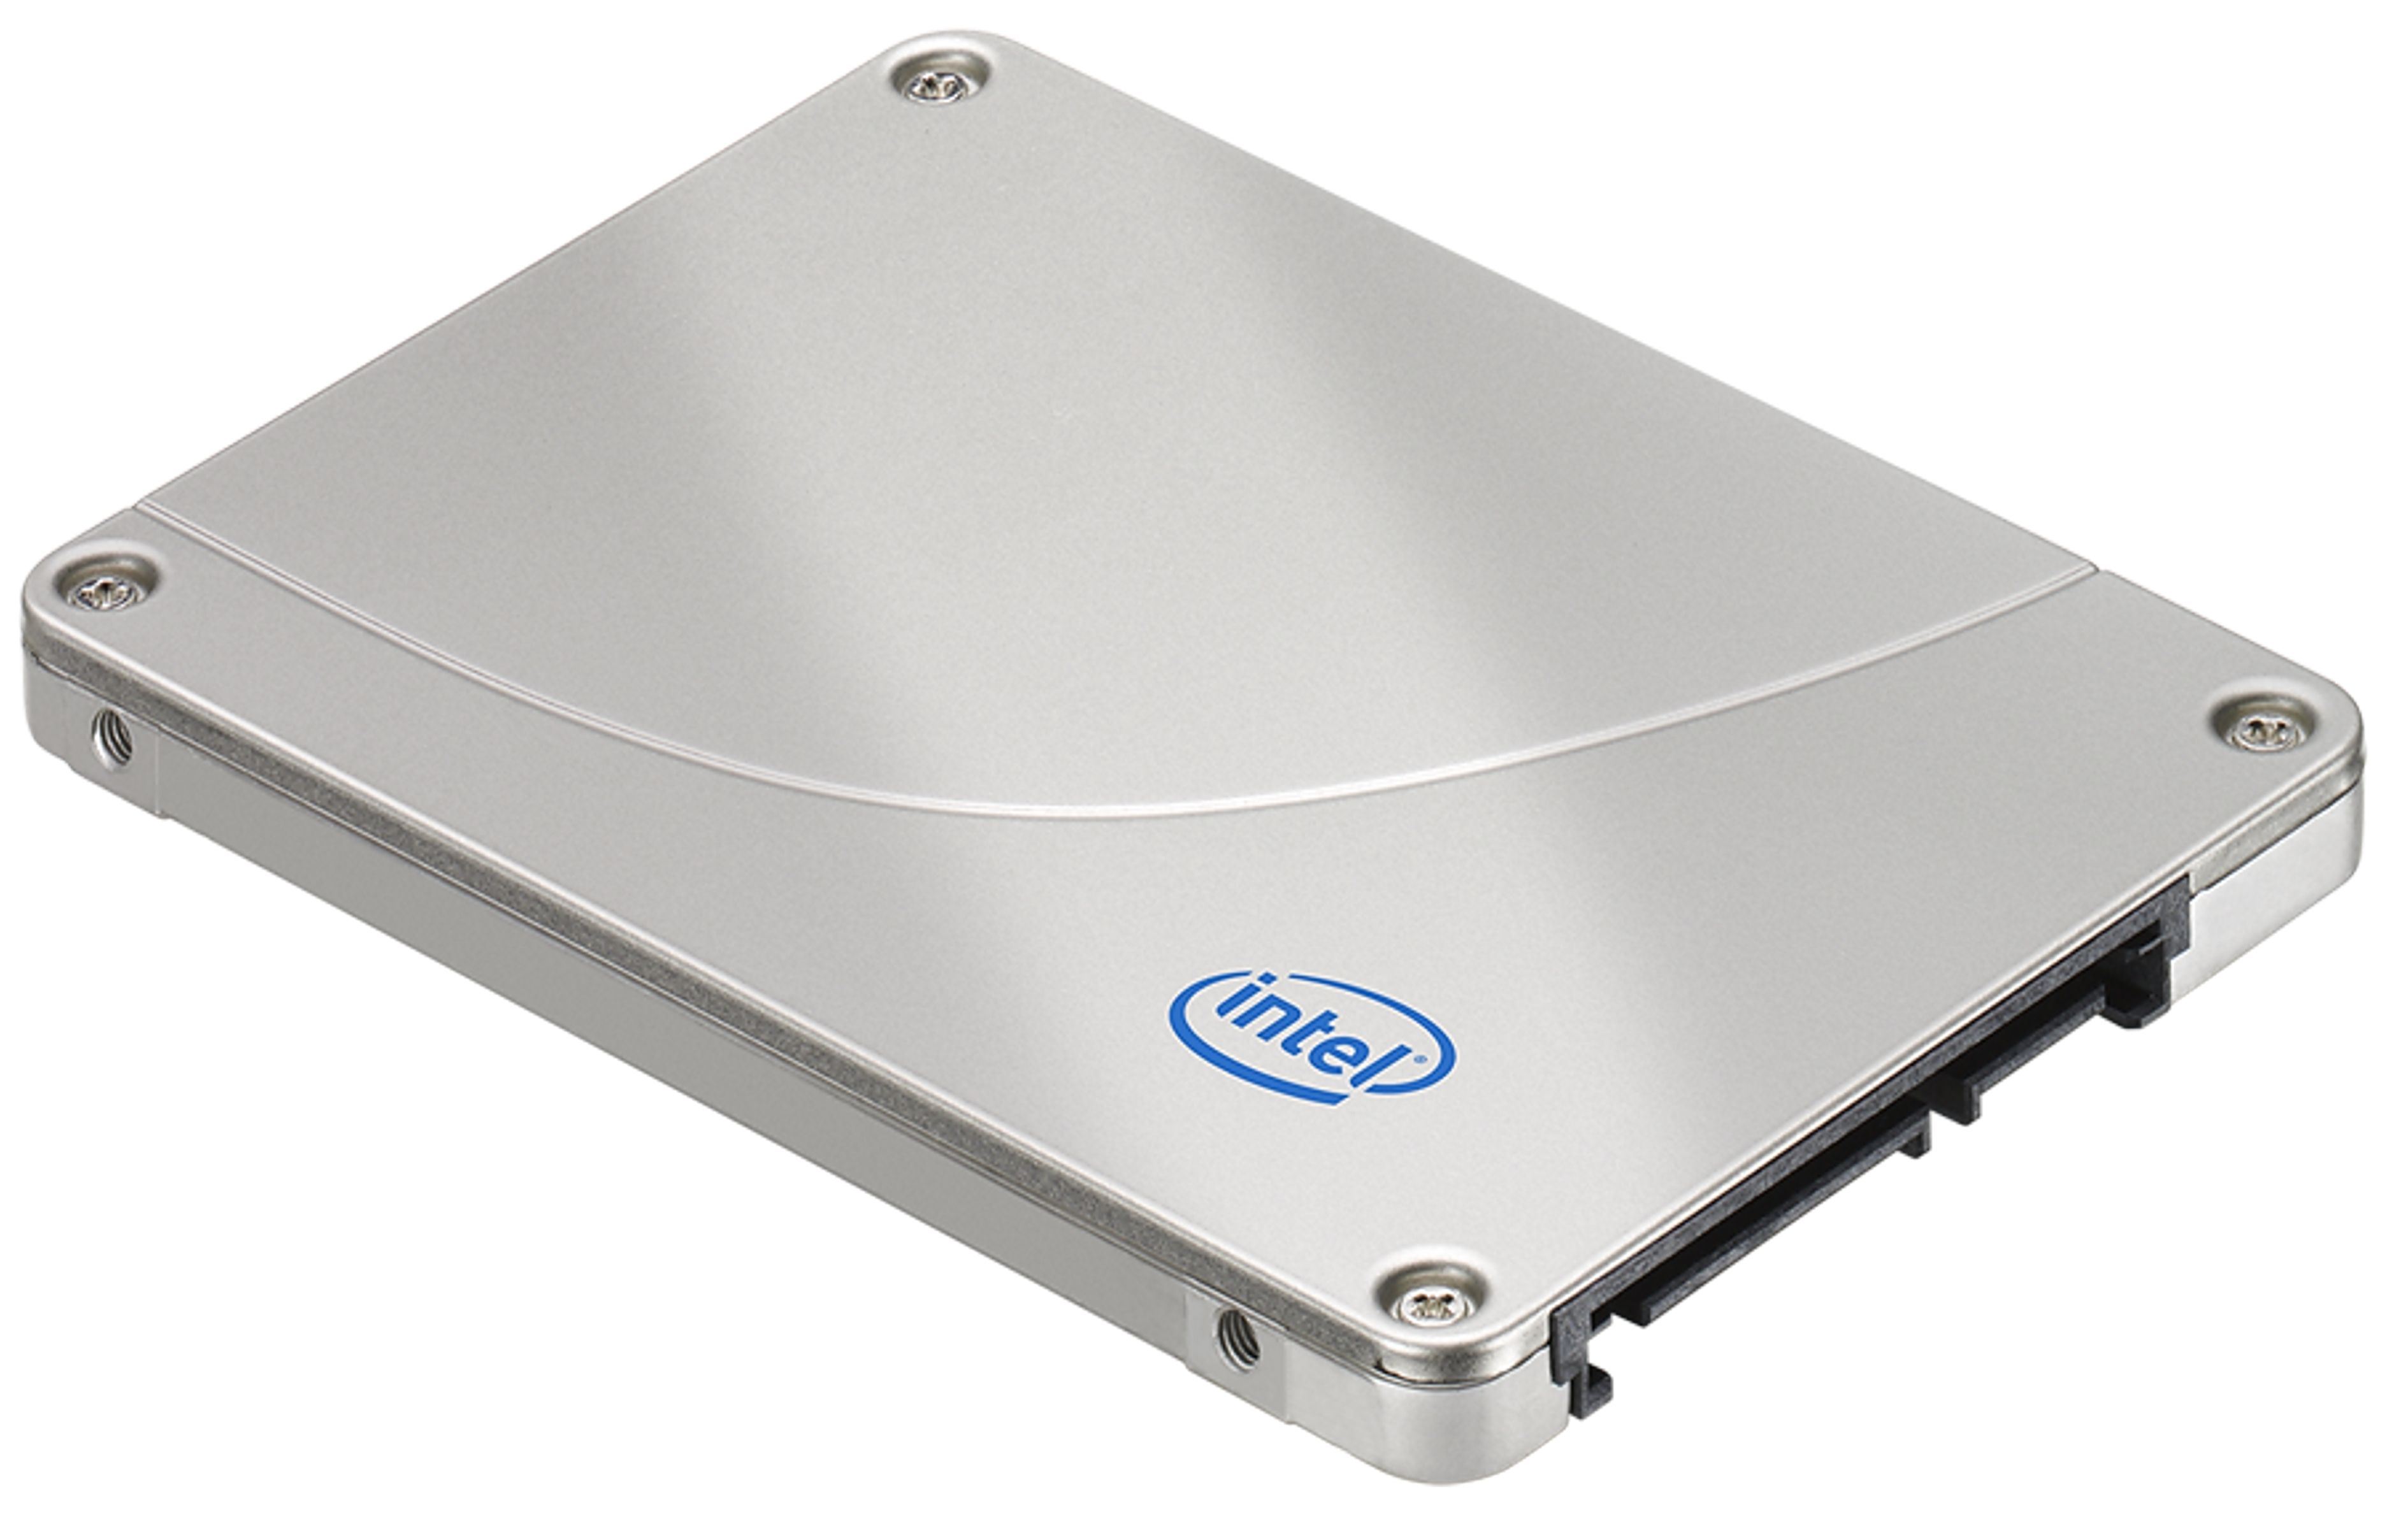 Intel introduces SSD, also cuts SSD prices